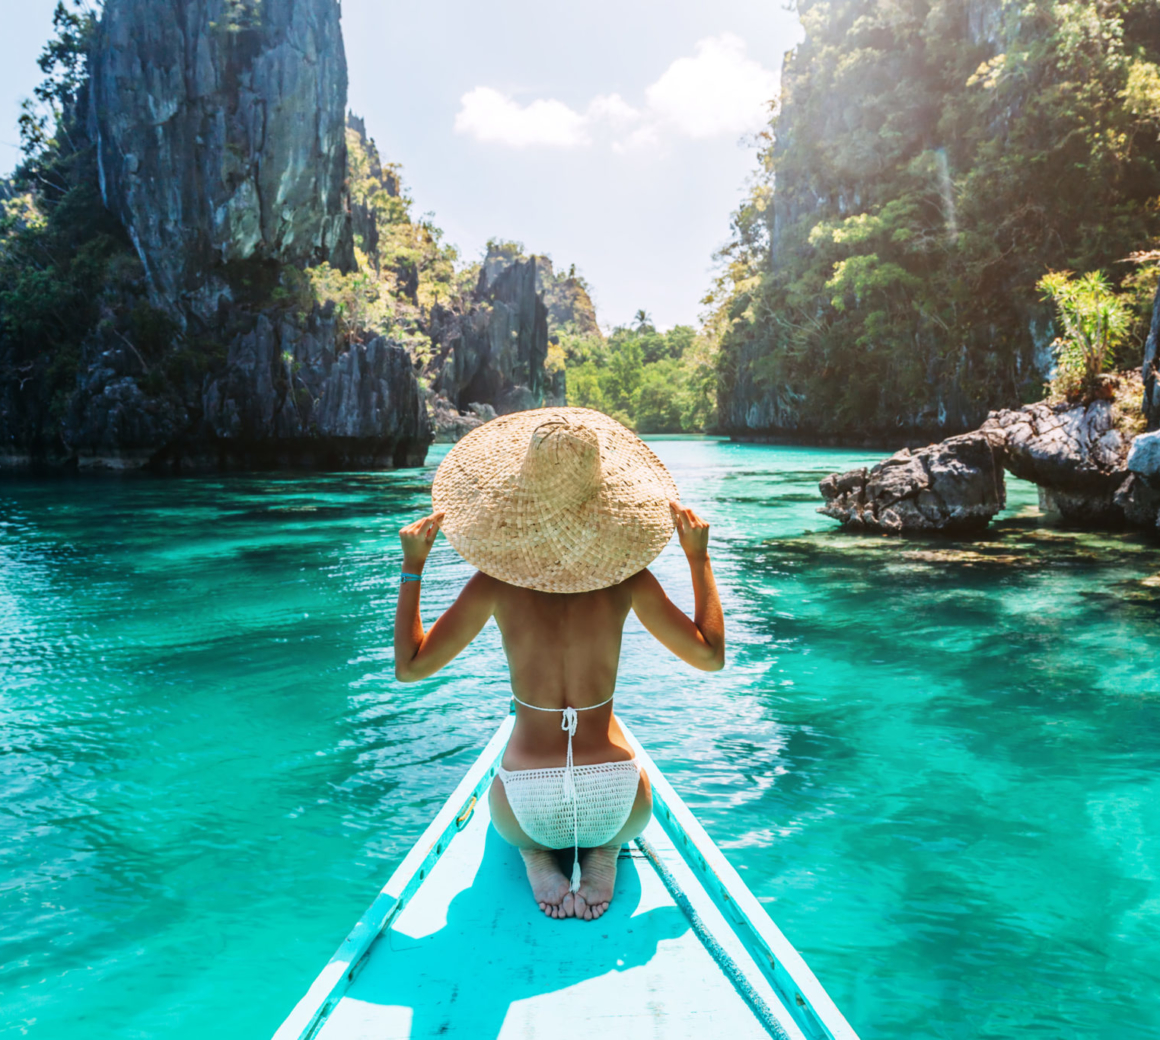 The Archetype of Female Travelers vs. the REAL Women Who Travel